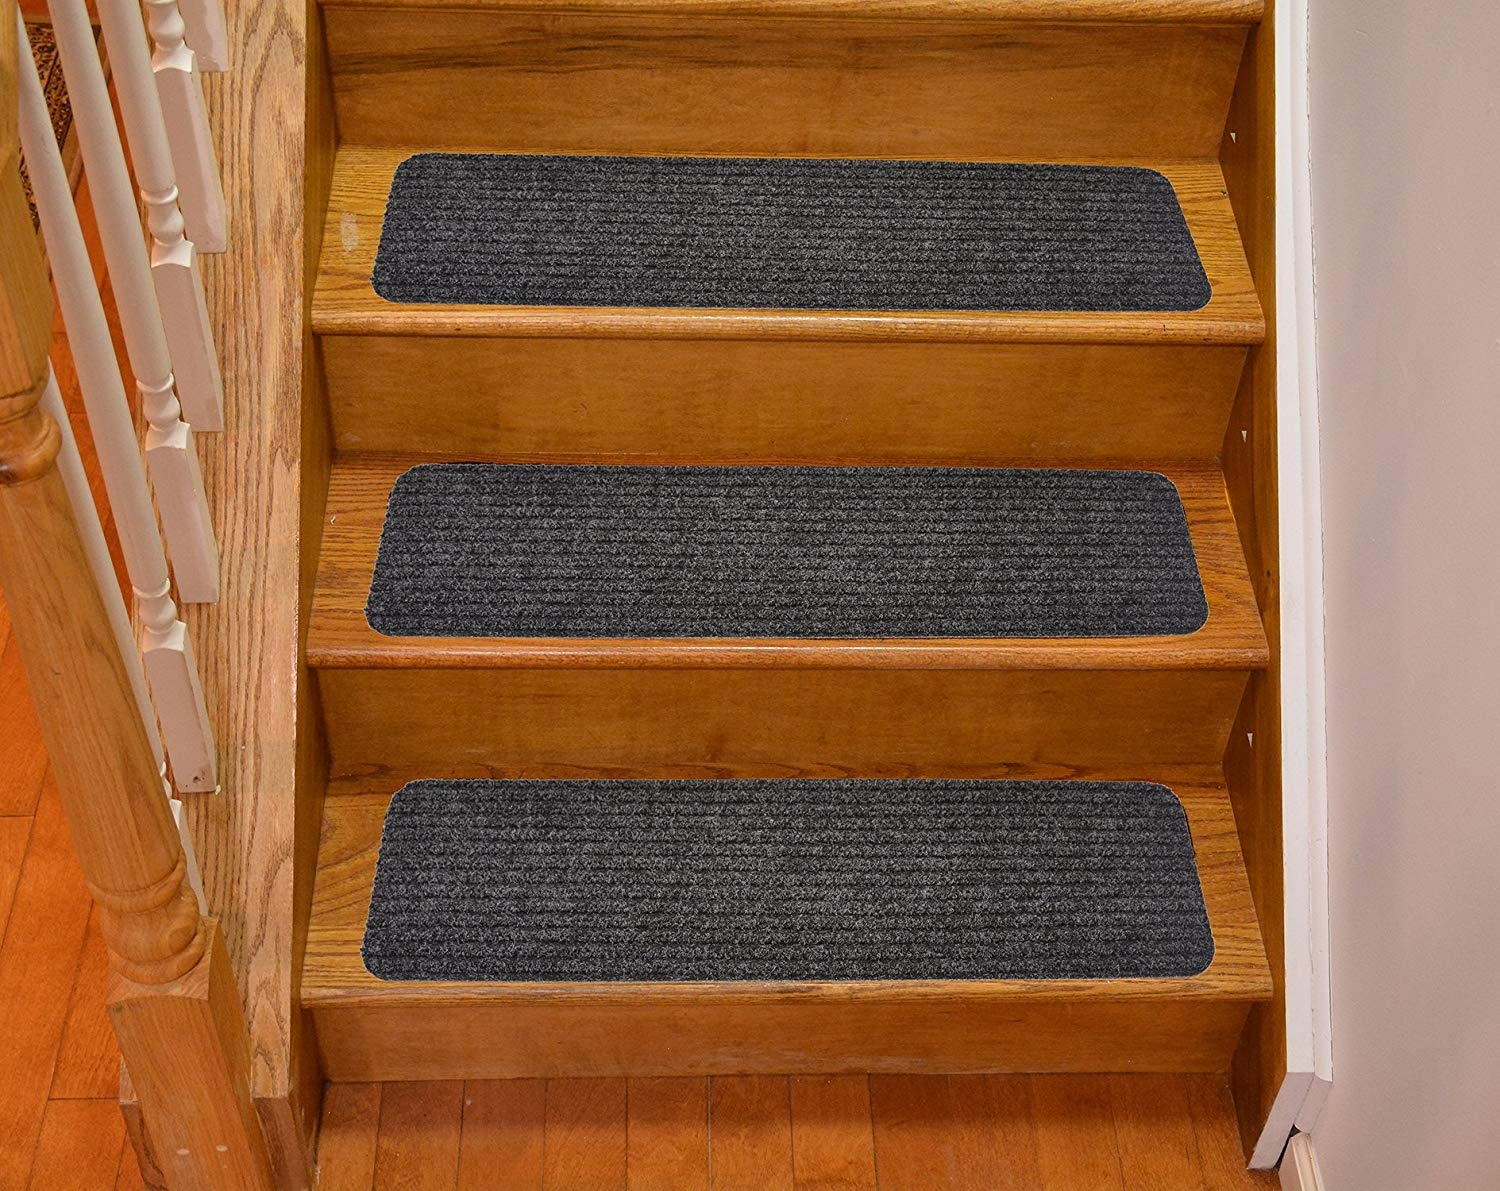 Cheap Rubber Stair Treads Indoor Find Rubber Stair Treads Indoor | Grey Carpet Treads For Stairs | Wool Carpet | Indoor Outdoor | Skid Resistant | Custom Stair | Rugs